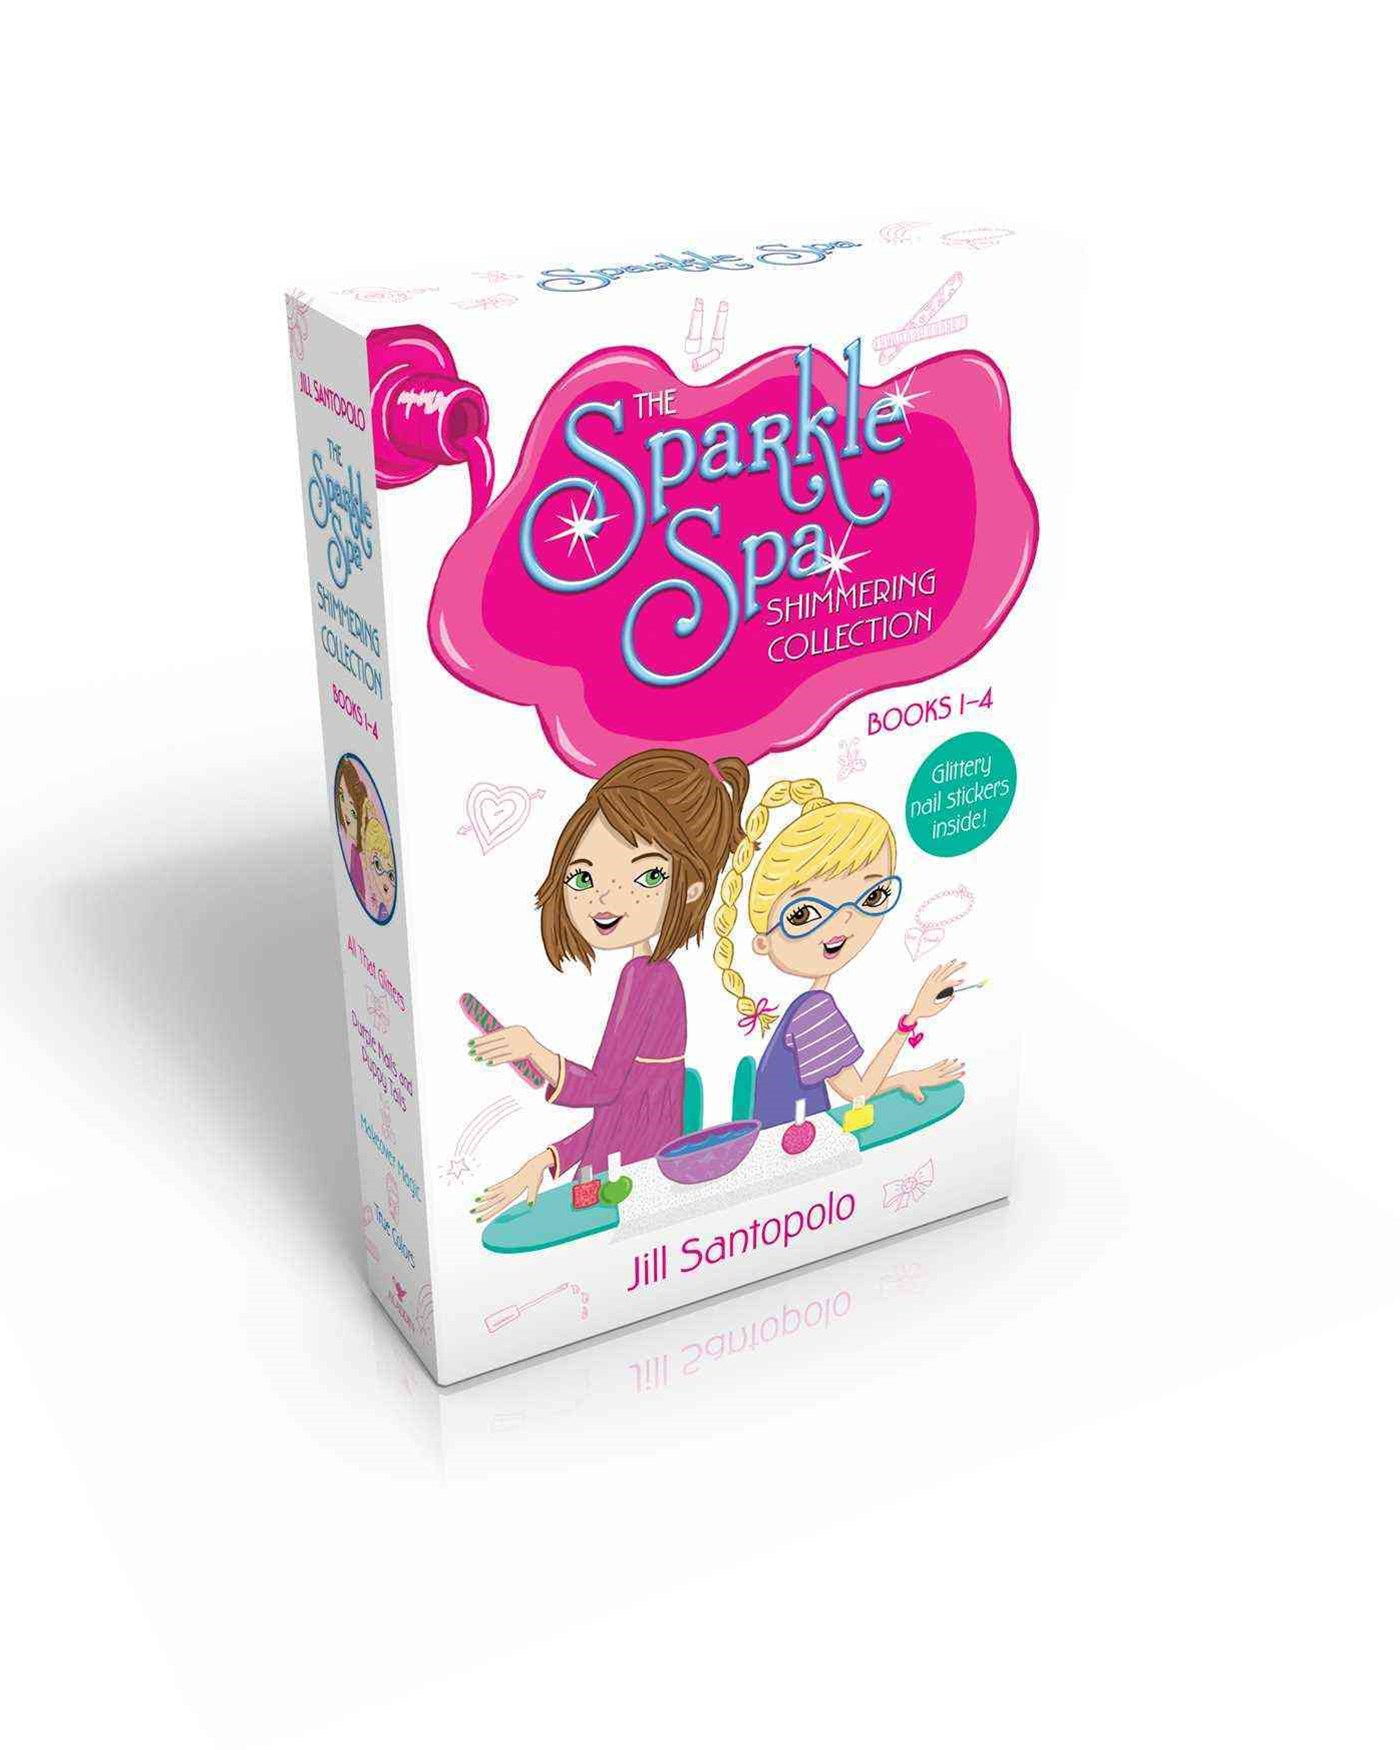 The Sparkle Spa Shimmering Collection Books 1-4 (Glittery nail stickers inside!): All That Glitters